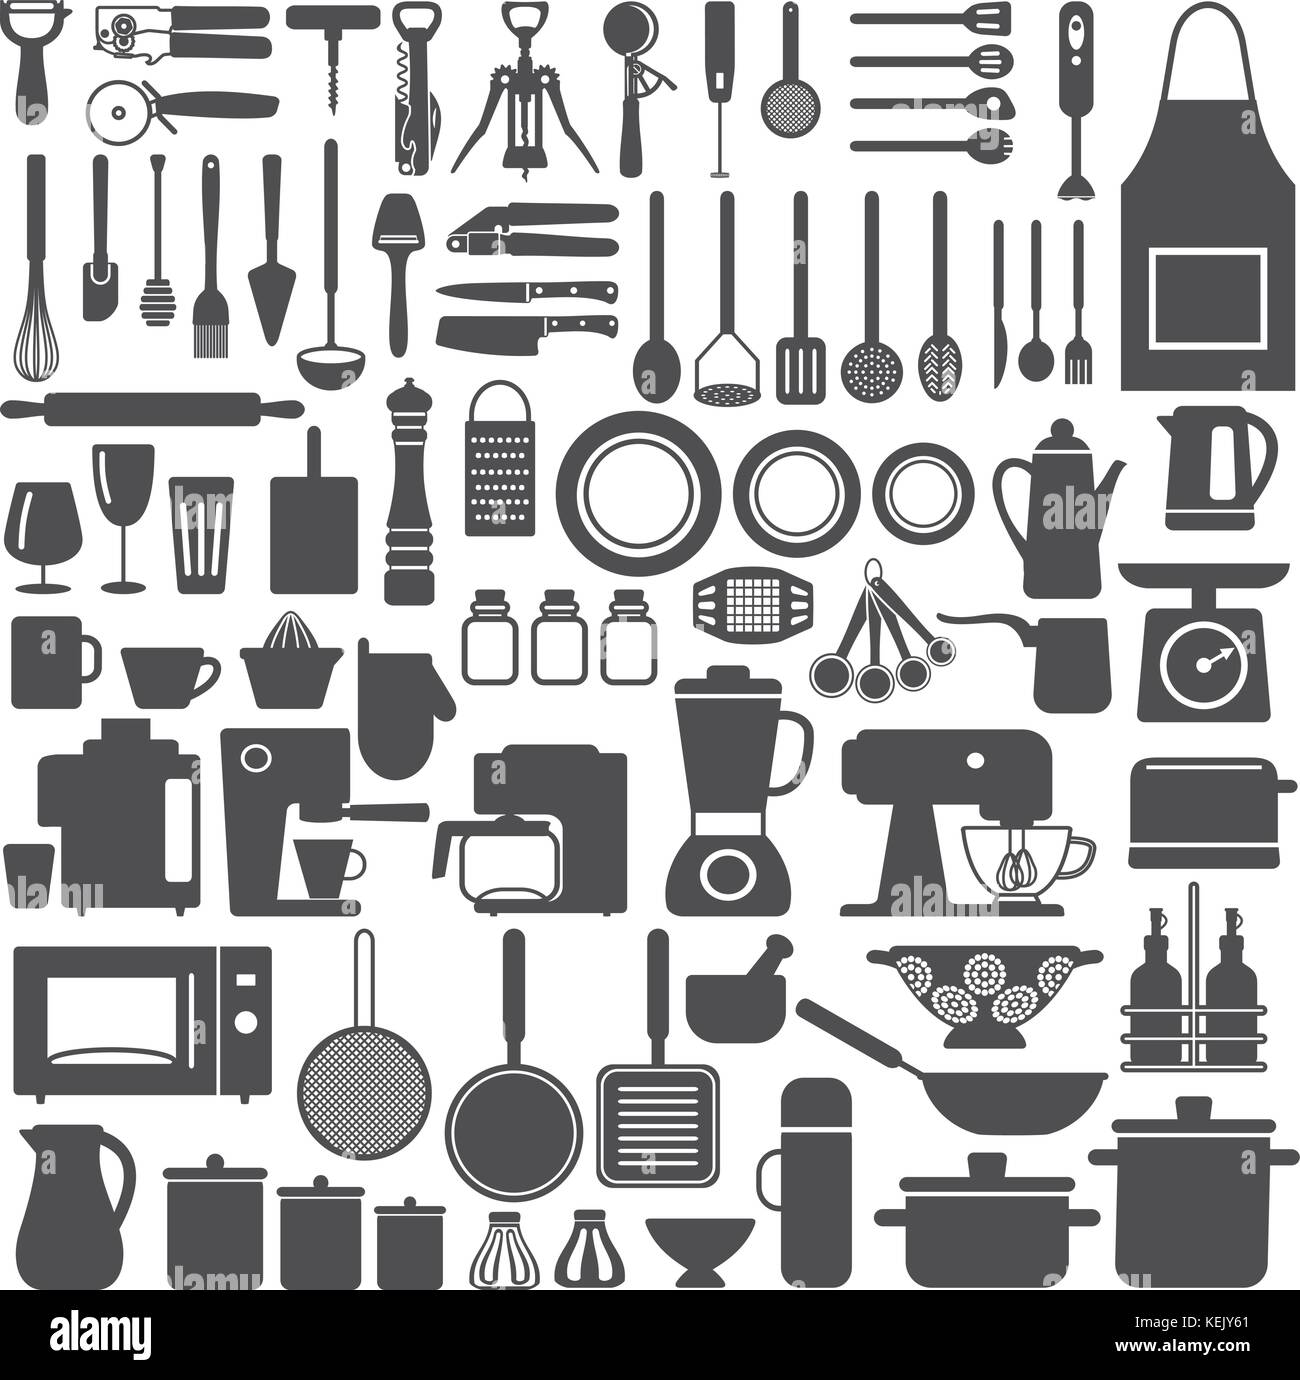 Various kitchen utensils and appliances vector  silhouette icons set. - Stock Vector